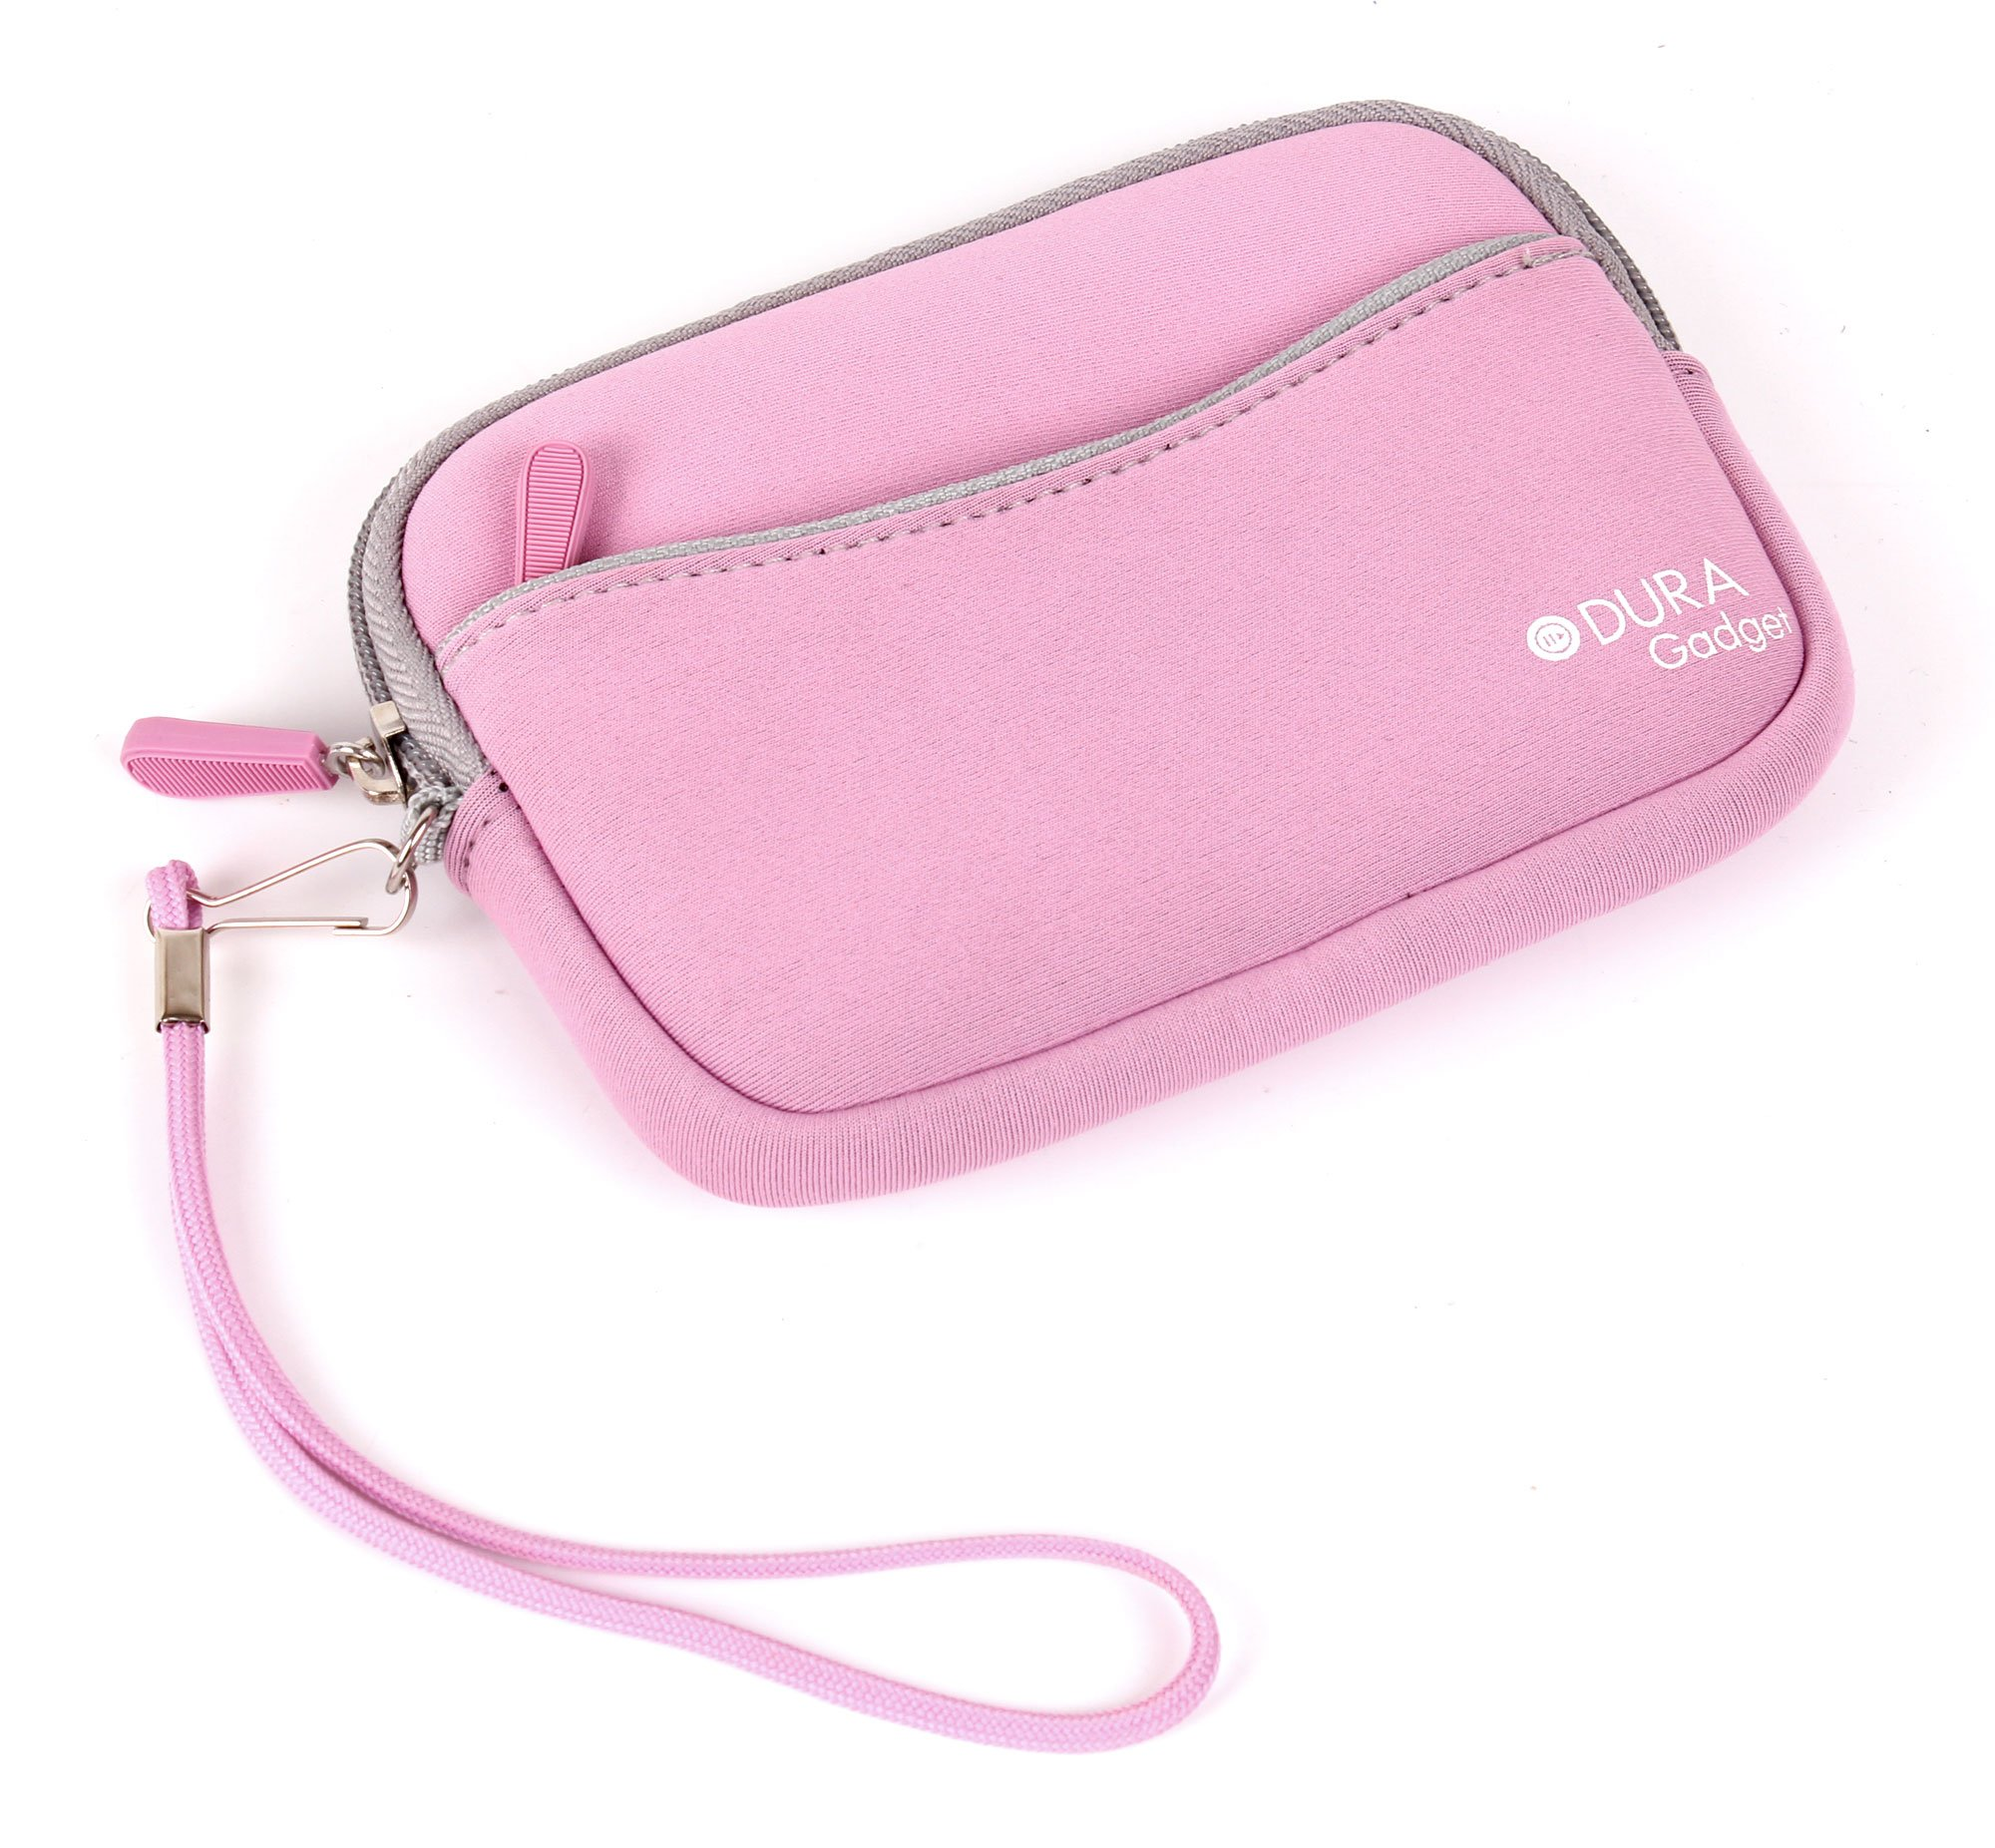 DURAGADGET Pink Neoprene Satnav Carry Case With Wrist Strap And Accessory Pocket For Garmin z?mo 590LM